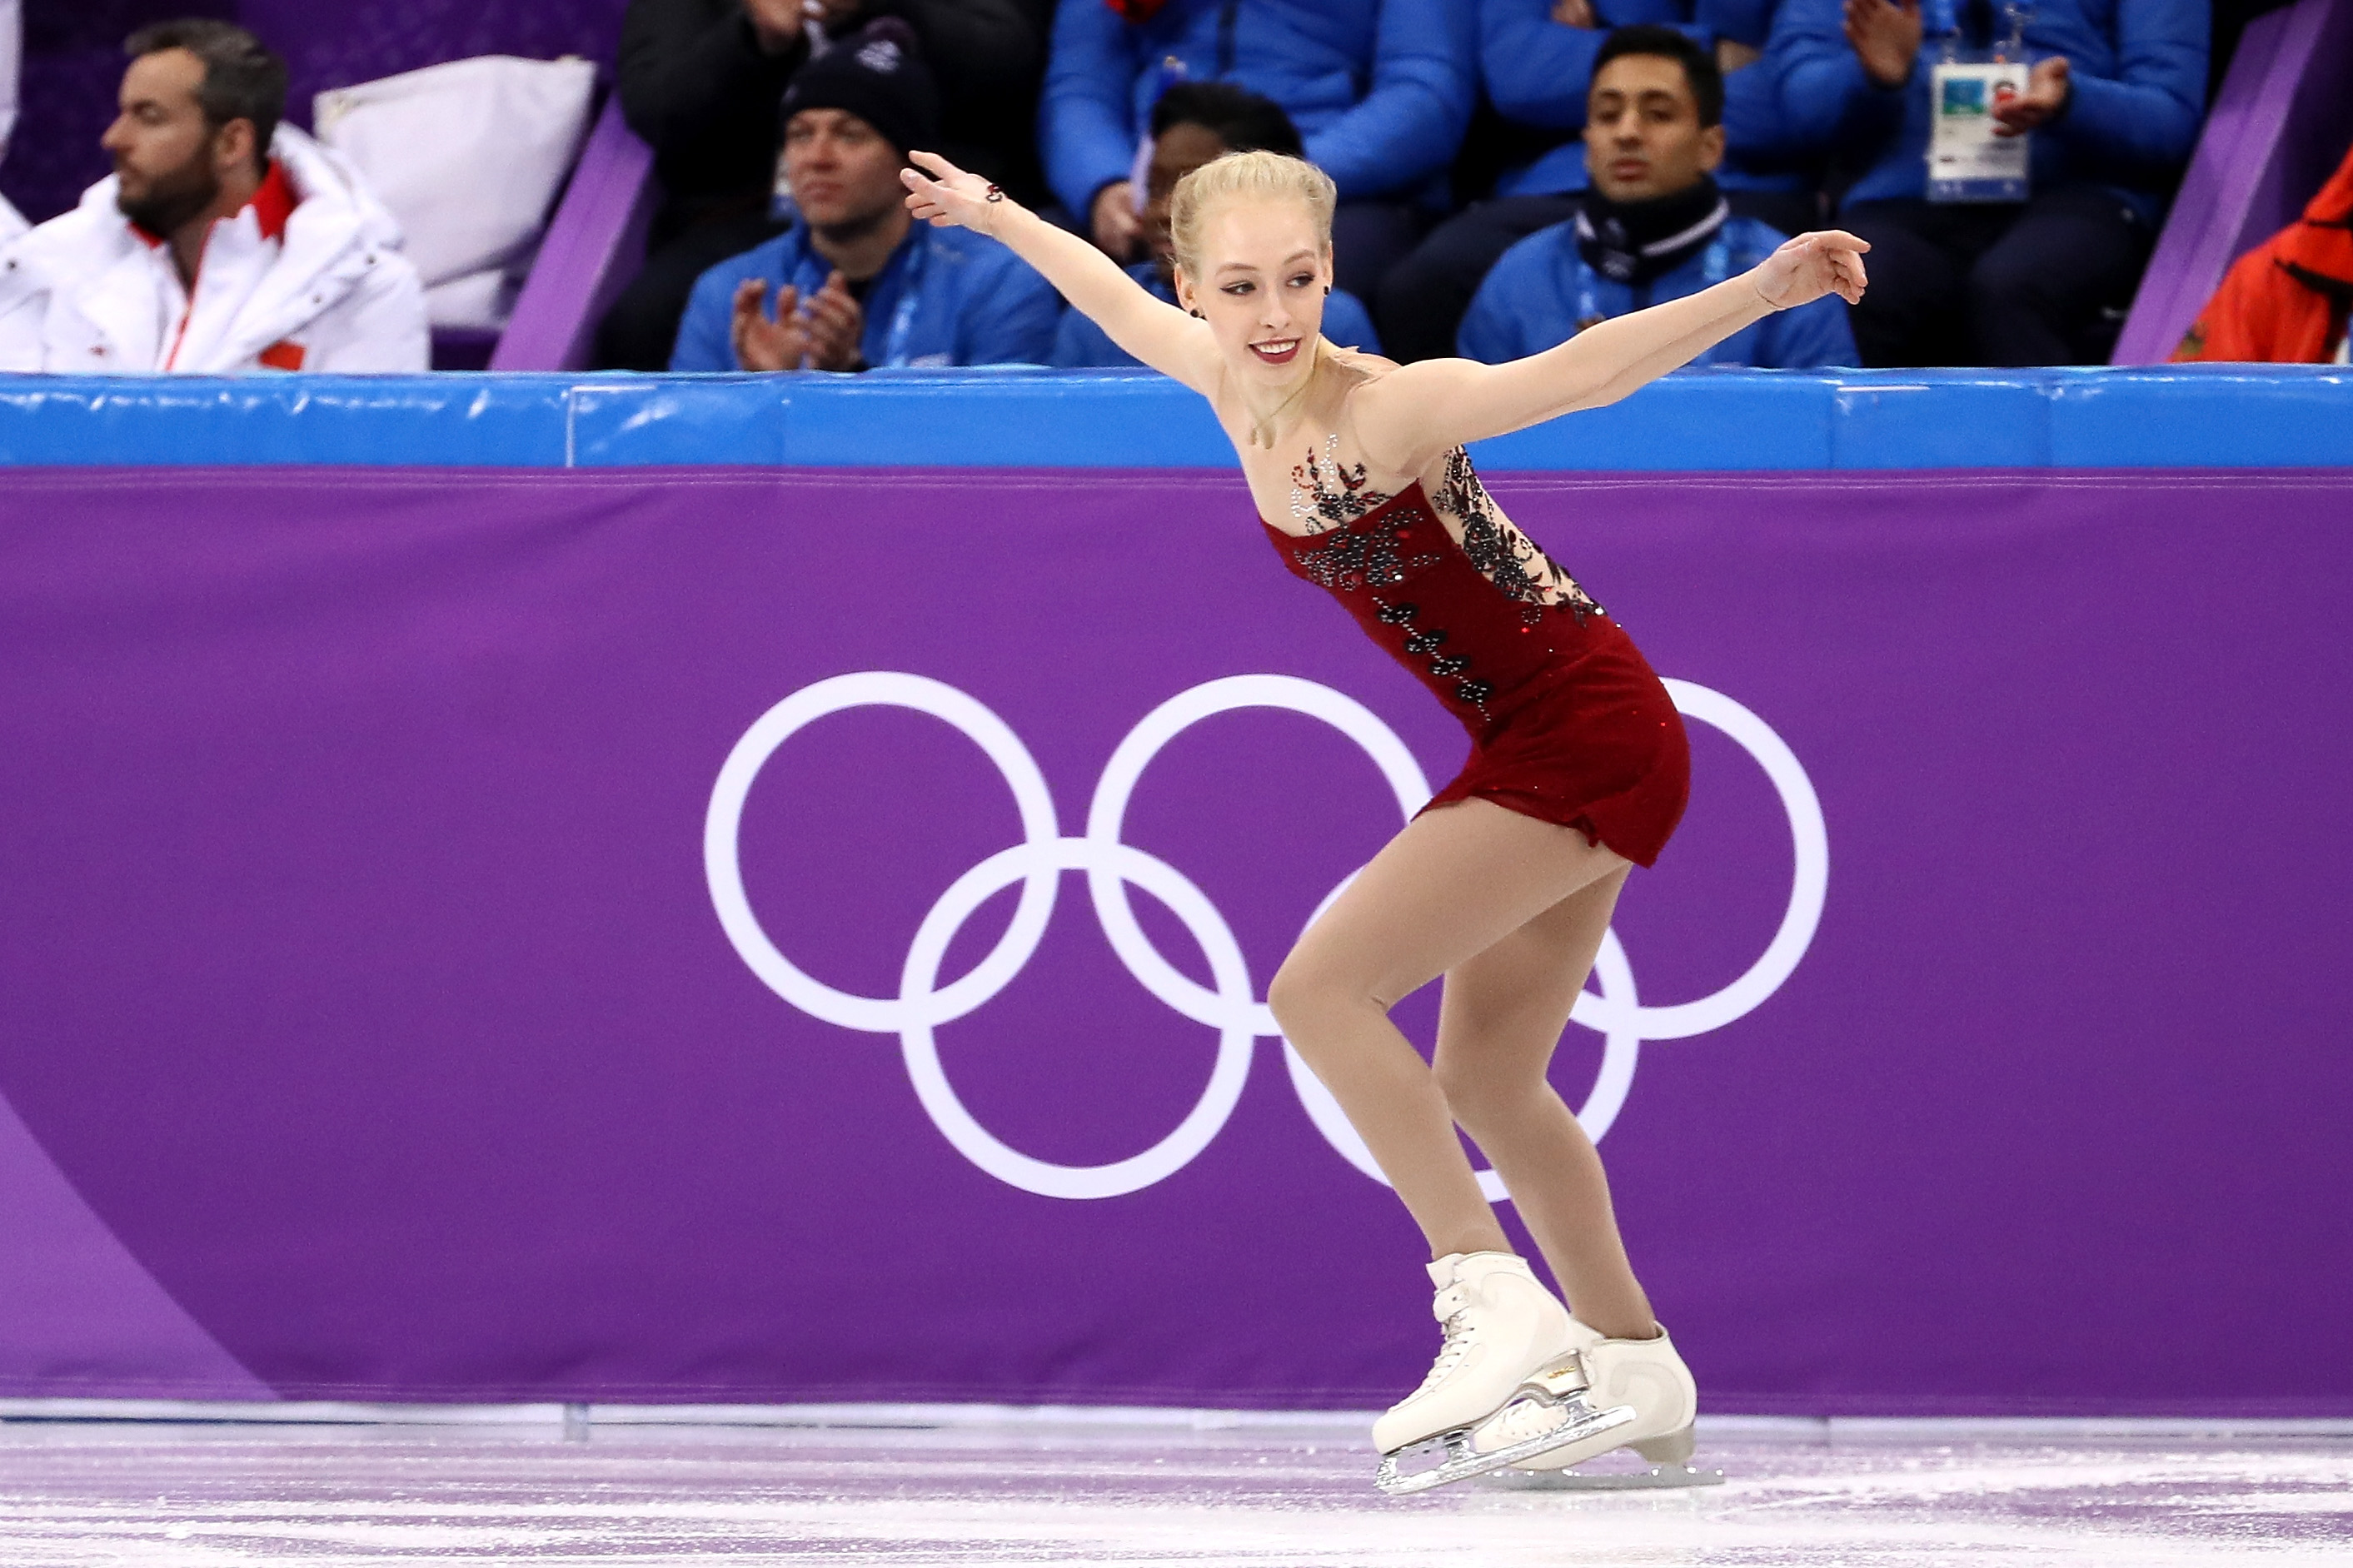 Bradie Tennell of the United States competes in the Figure Skating Team Event – Ladies' Short Program on day two of the PyeongChang 2018 Winter Olympic Games at Gangneung Ice Arena on February 11, 2018 in Gangneung, South Korea.